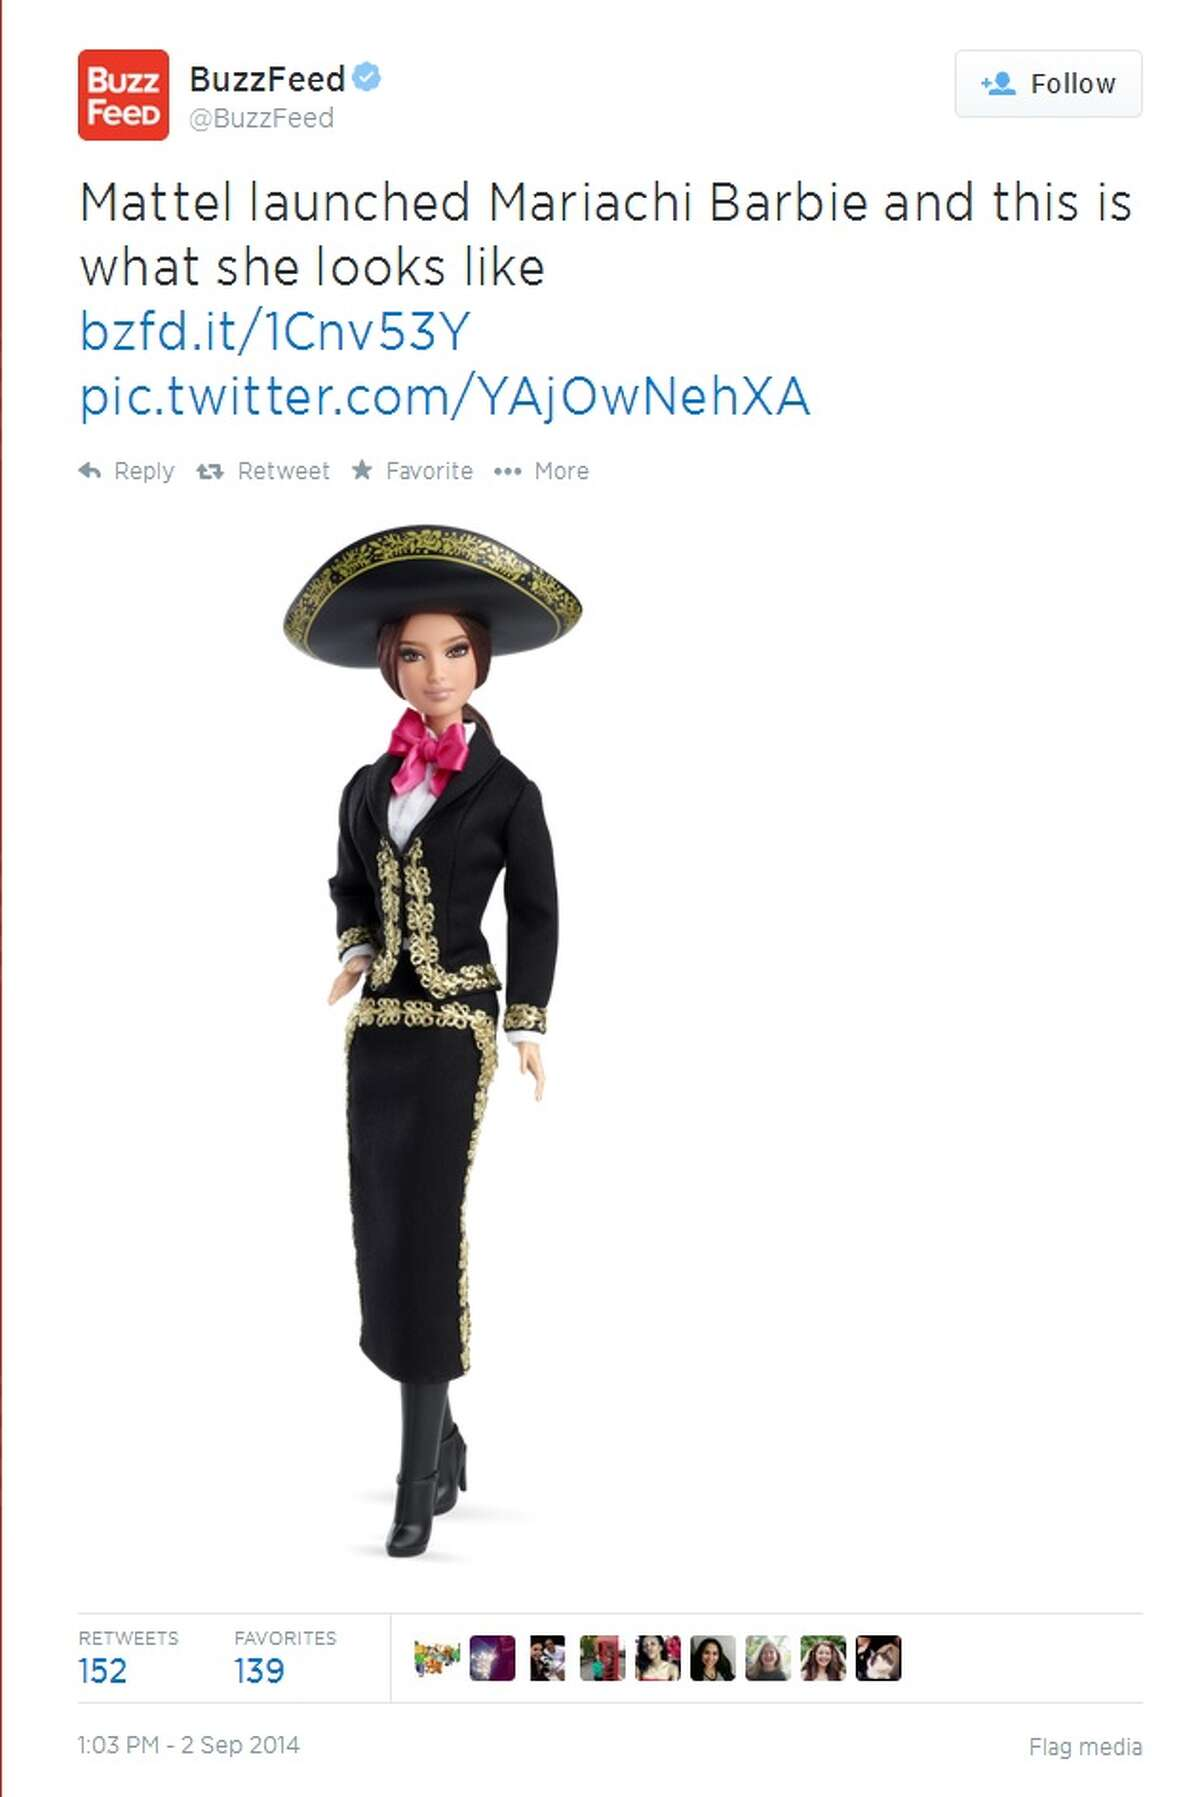 Mariachi Barbie makes her debut in time for Mexican Independence Day and National Hispanic Heritage Month, which begins Sept. 15 and runs to Oct. 15.